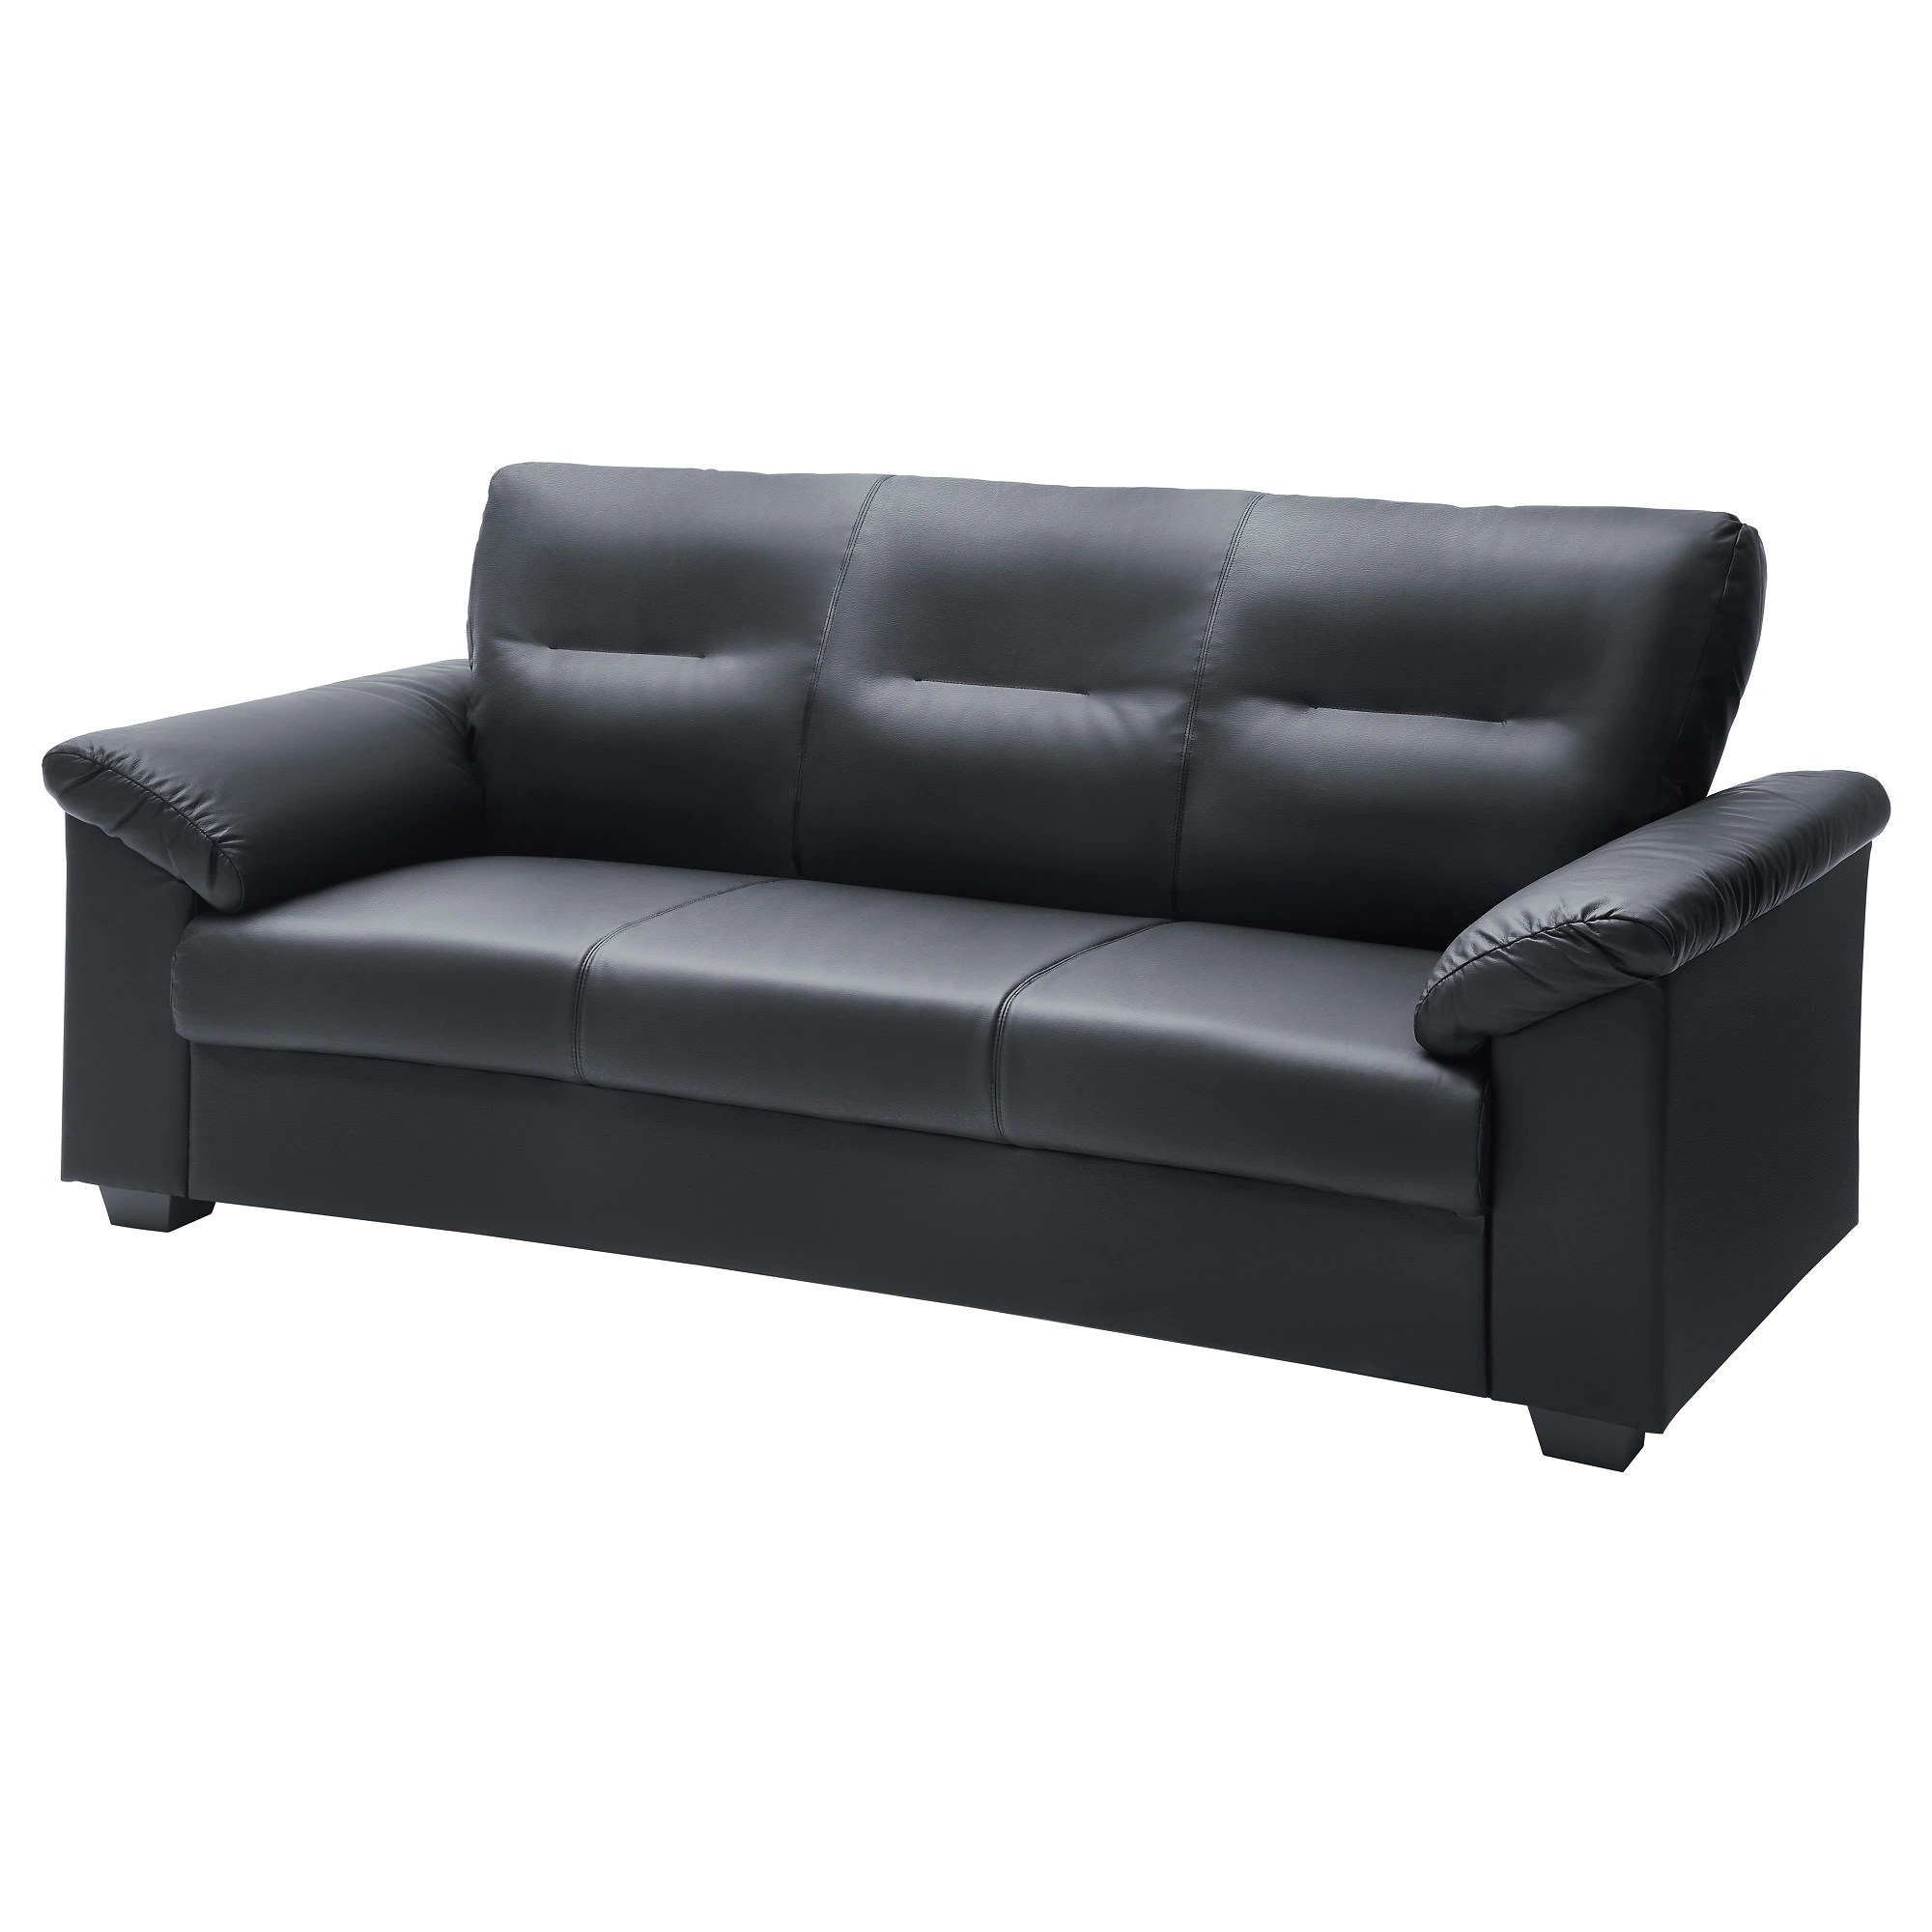 Chair Bed Canada Knislinge Sofa Idhult Black